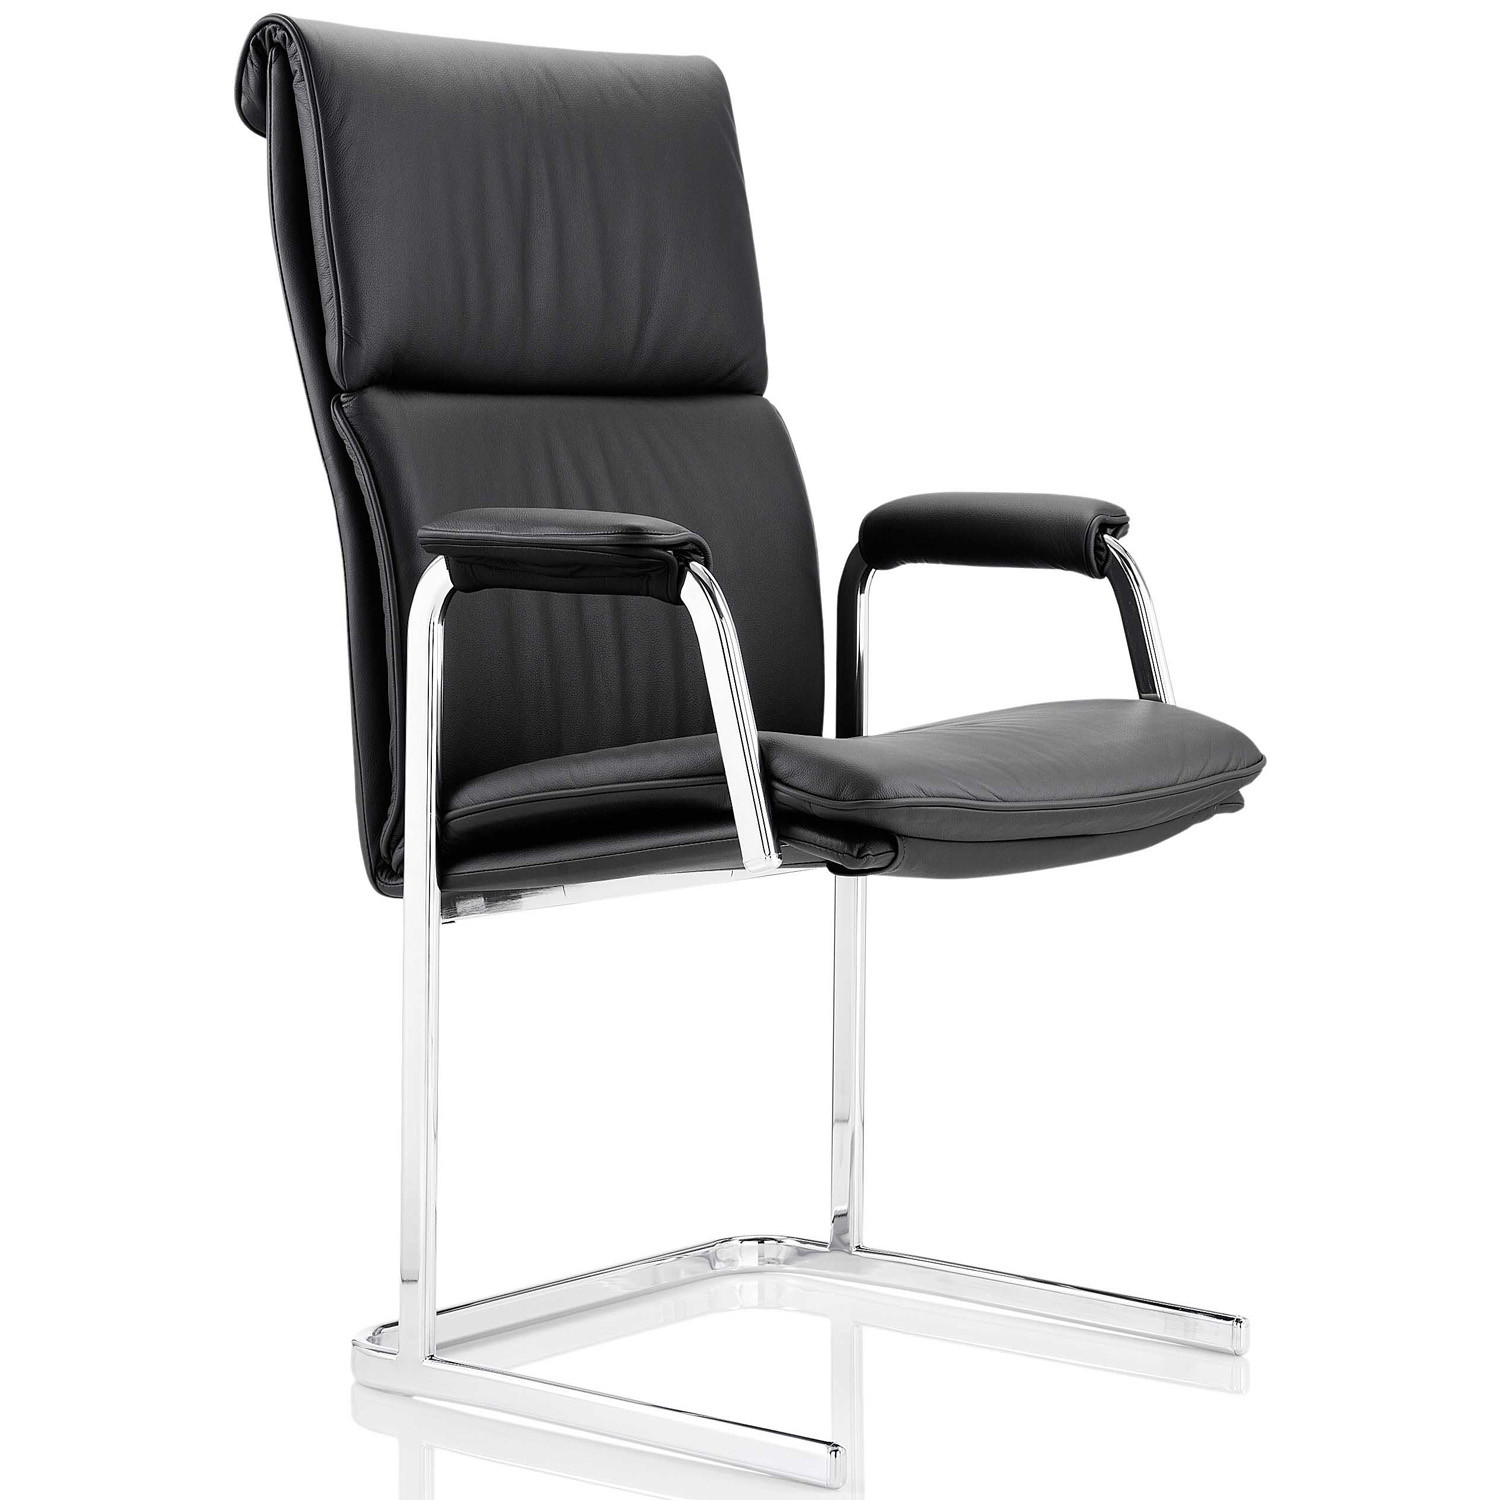 Delphi High Back Chair with cantilever base